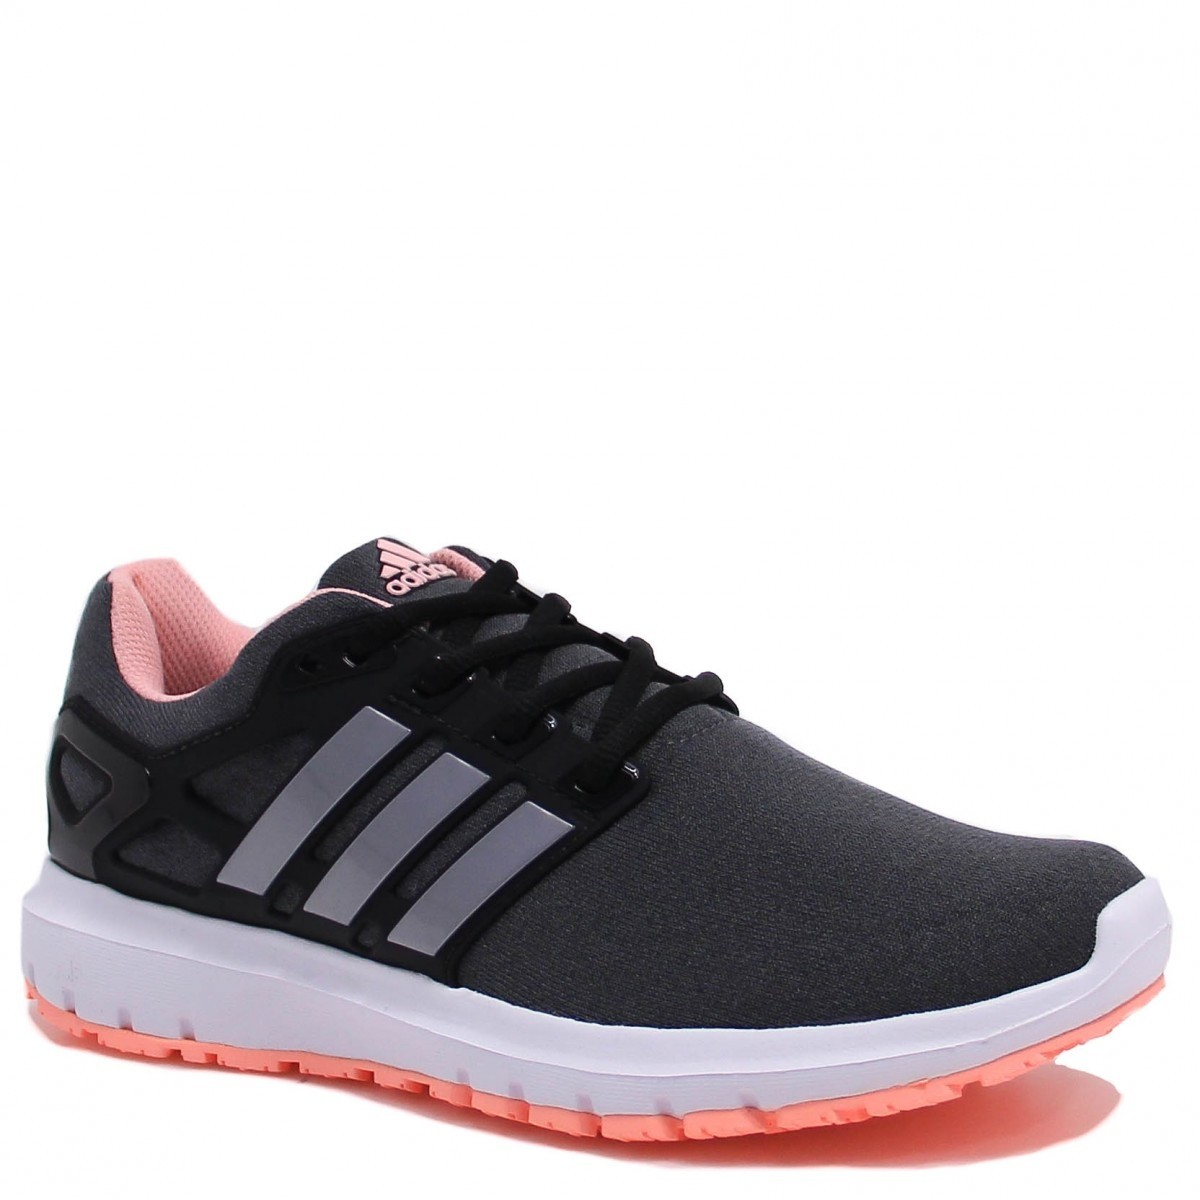 2182ed17207 Calcebel Tenis Adidas Energy Cloud Wtc w